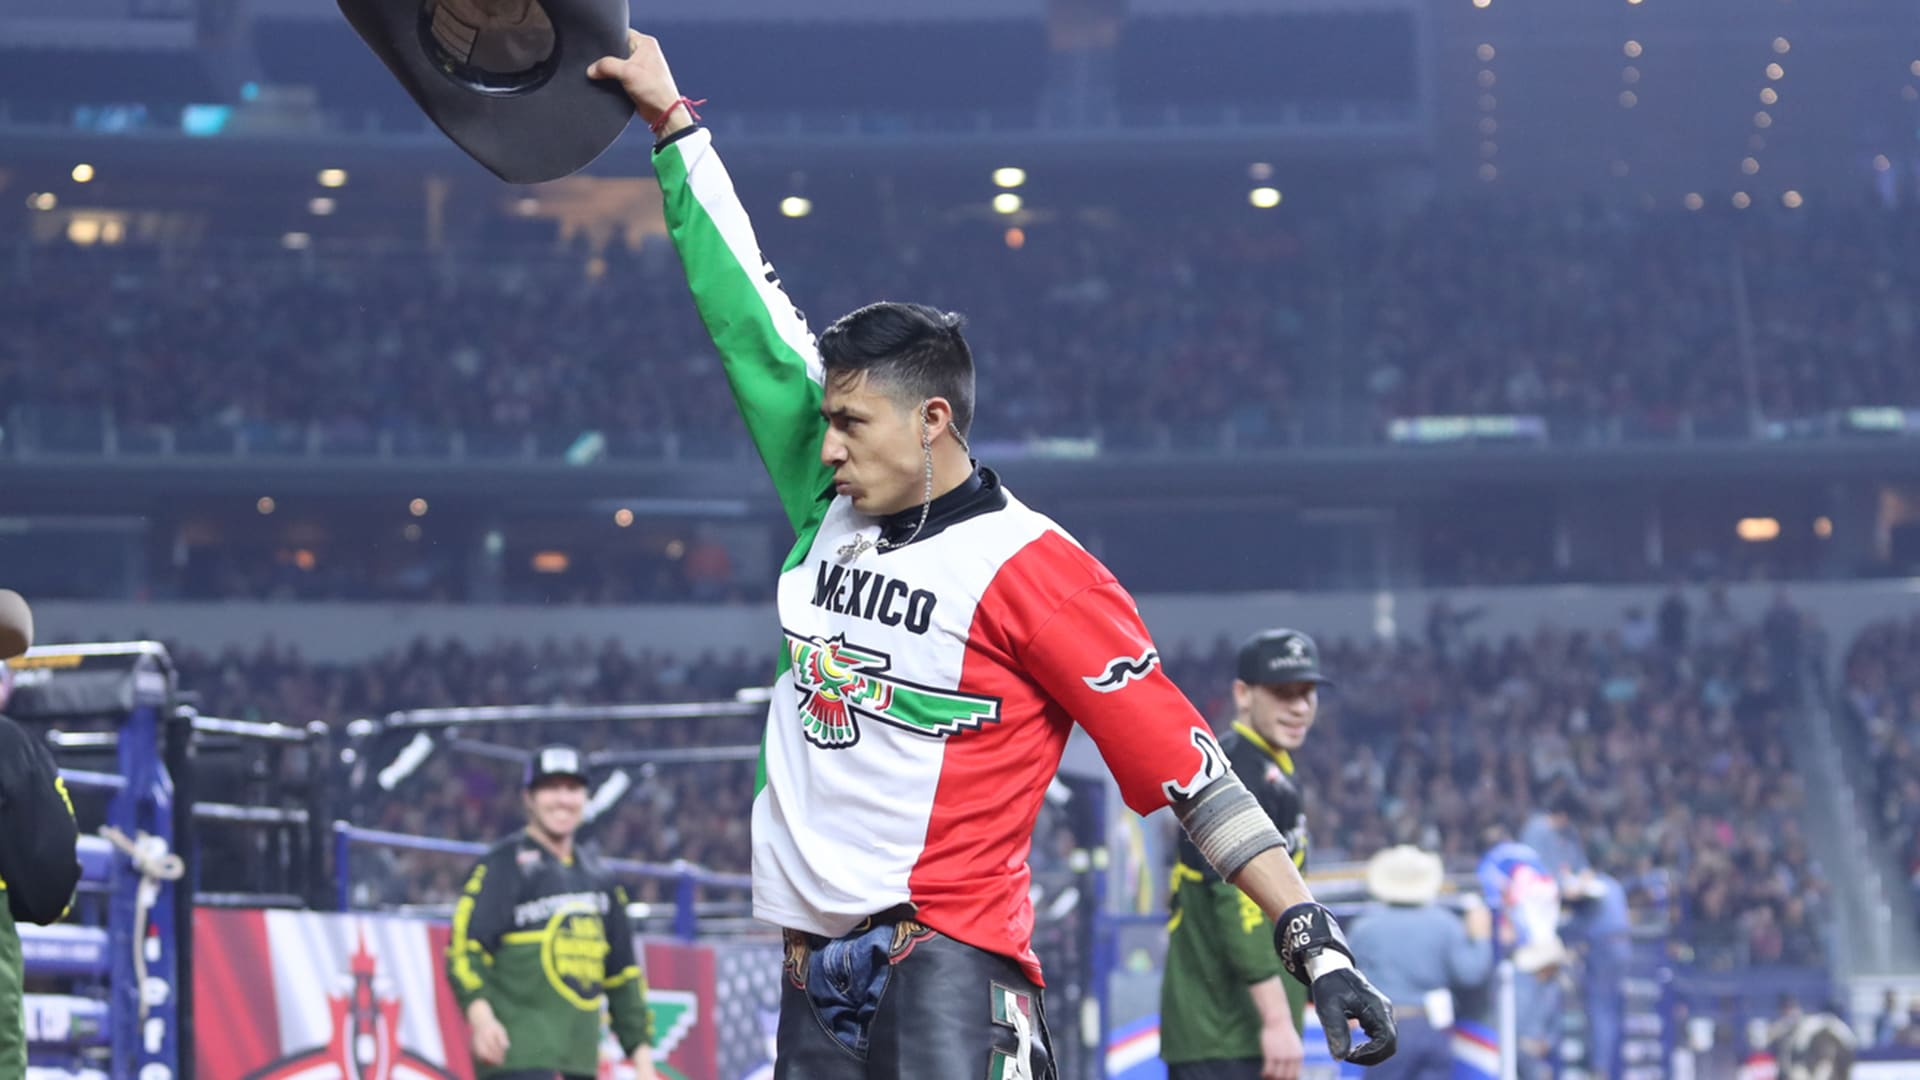 Alvarez helping put Mexico in position for record finish